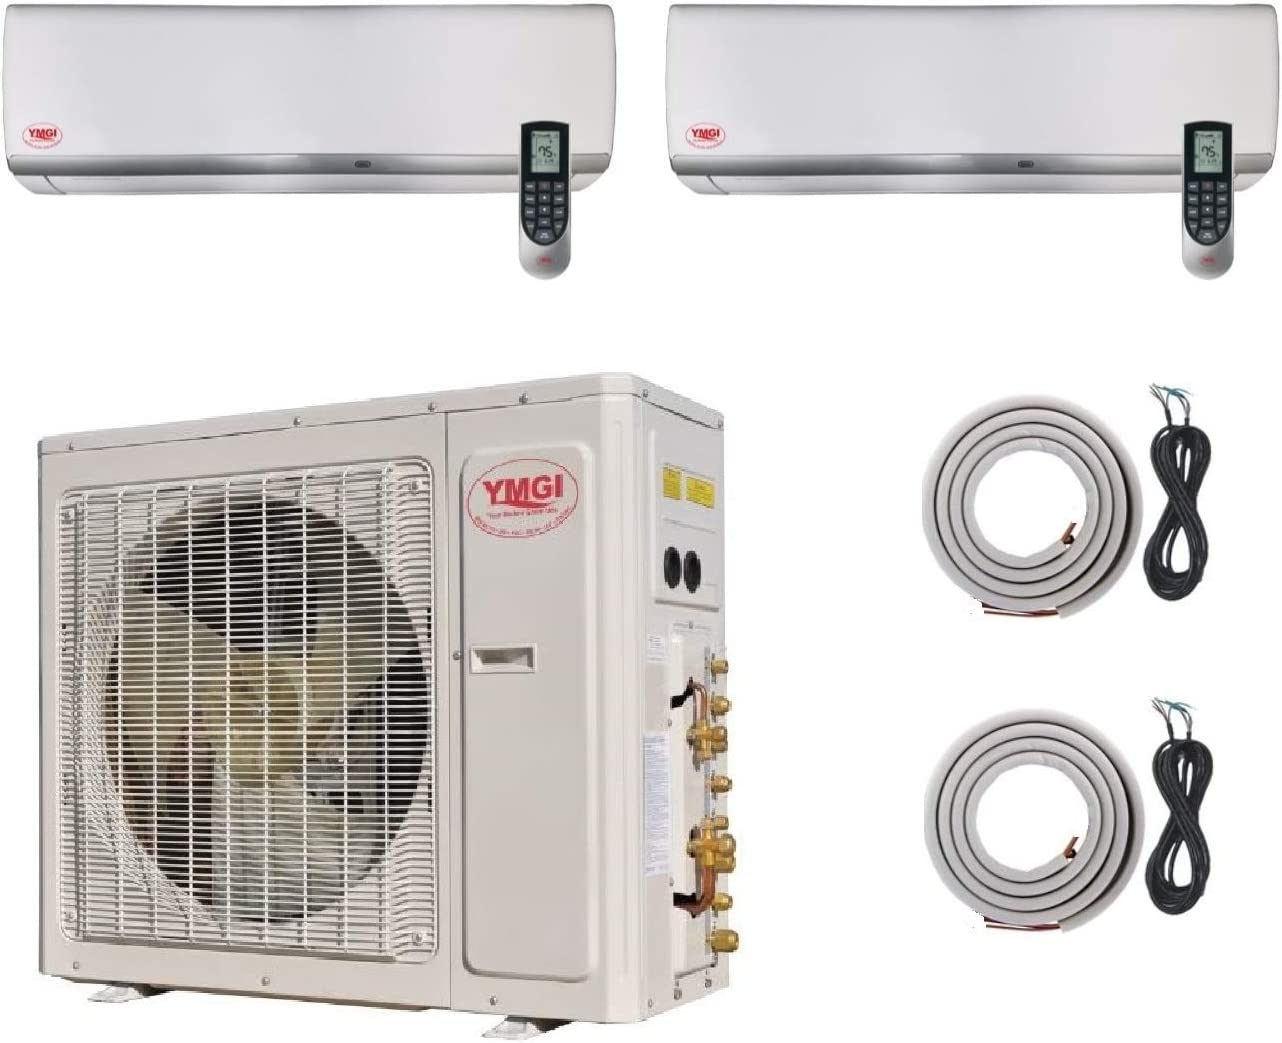 Ymgi Two Zone 42000 Btu 24k 18k 21 Seer Wall Mounted Ductless Mini Split Air Conditioner With Heat Pump For Home Office Apartment Appliances